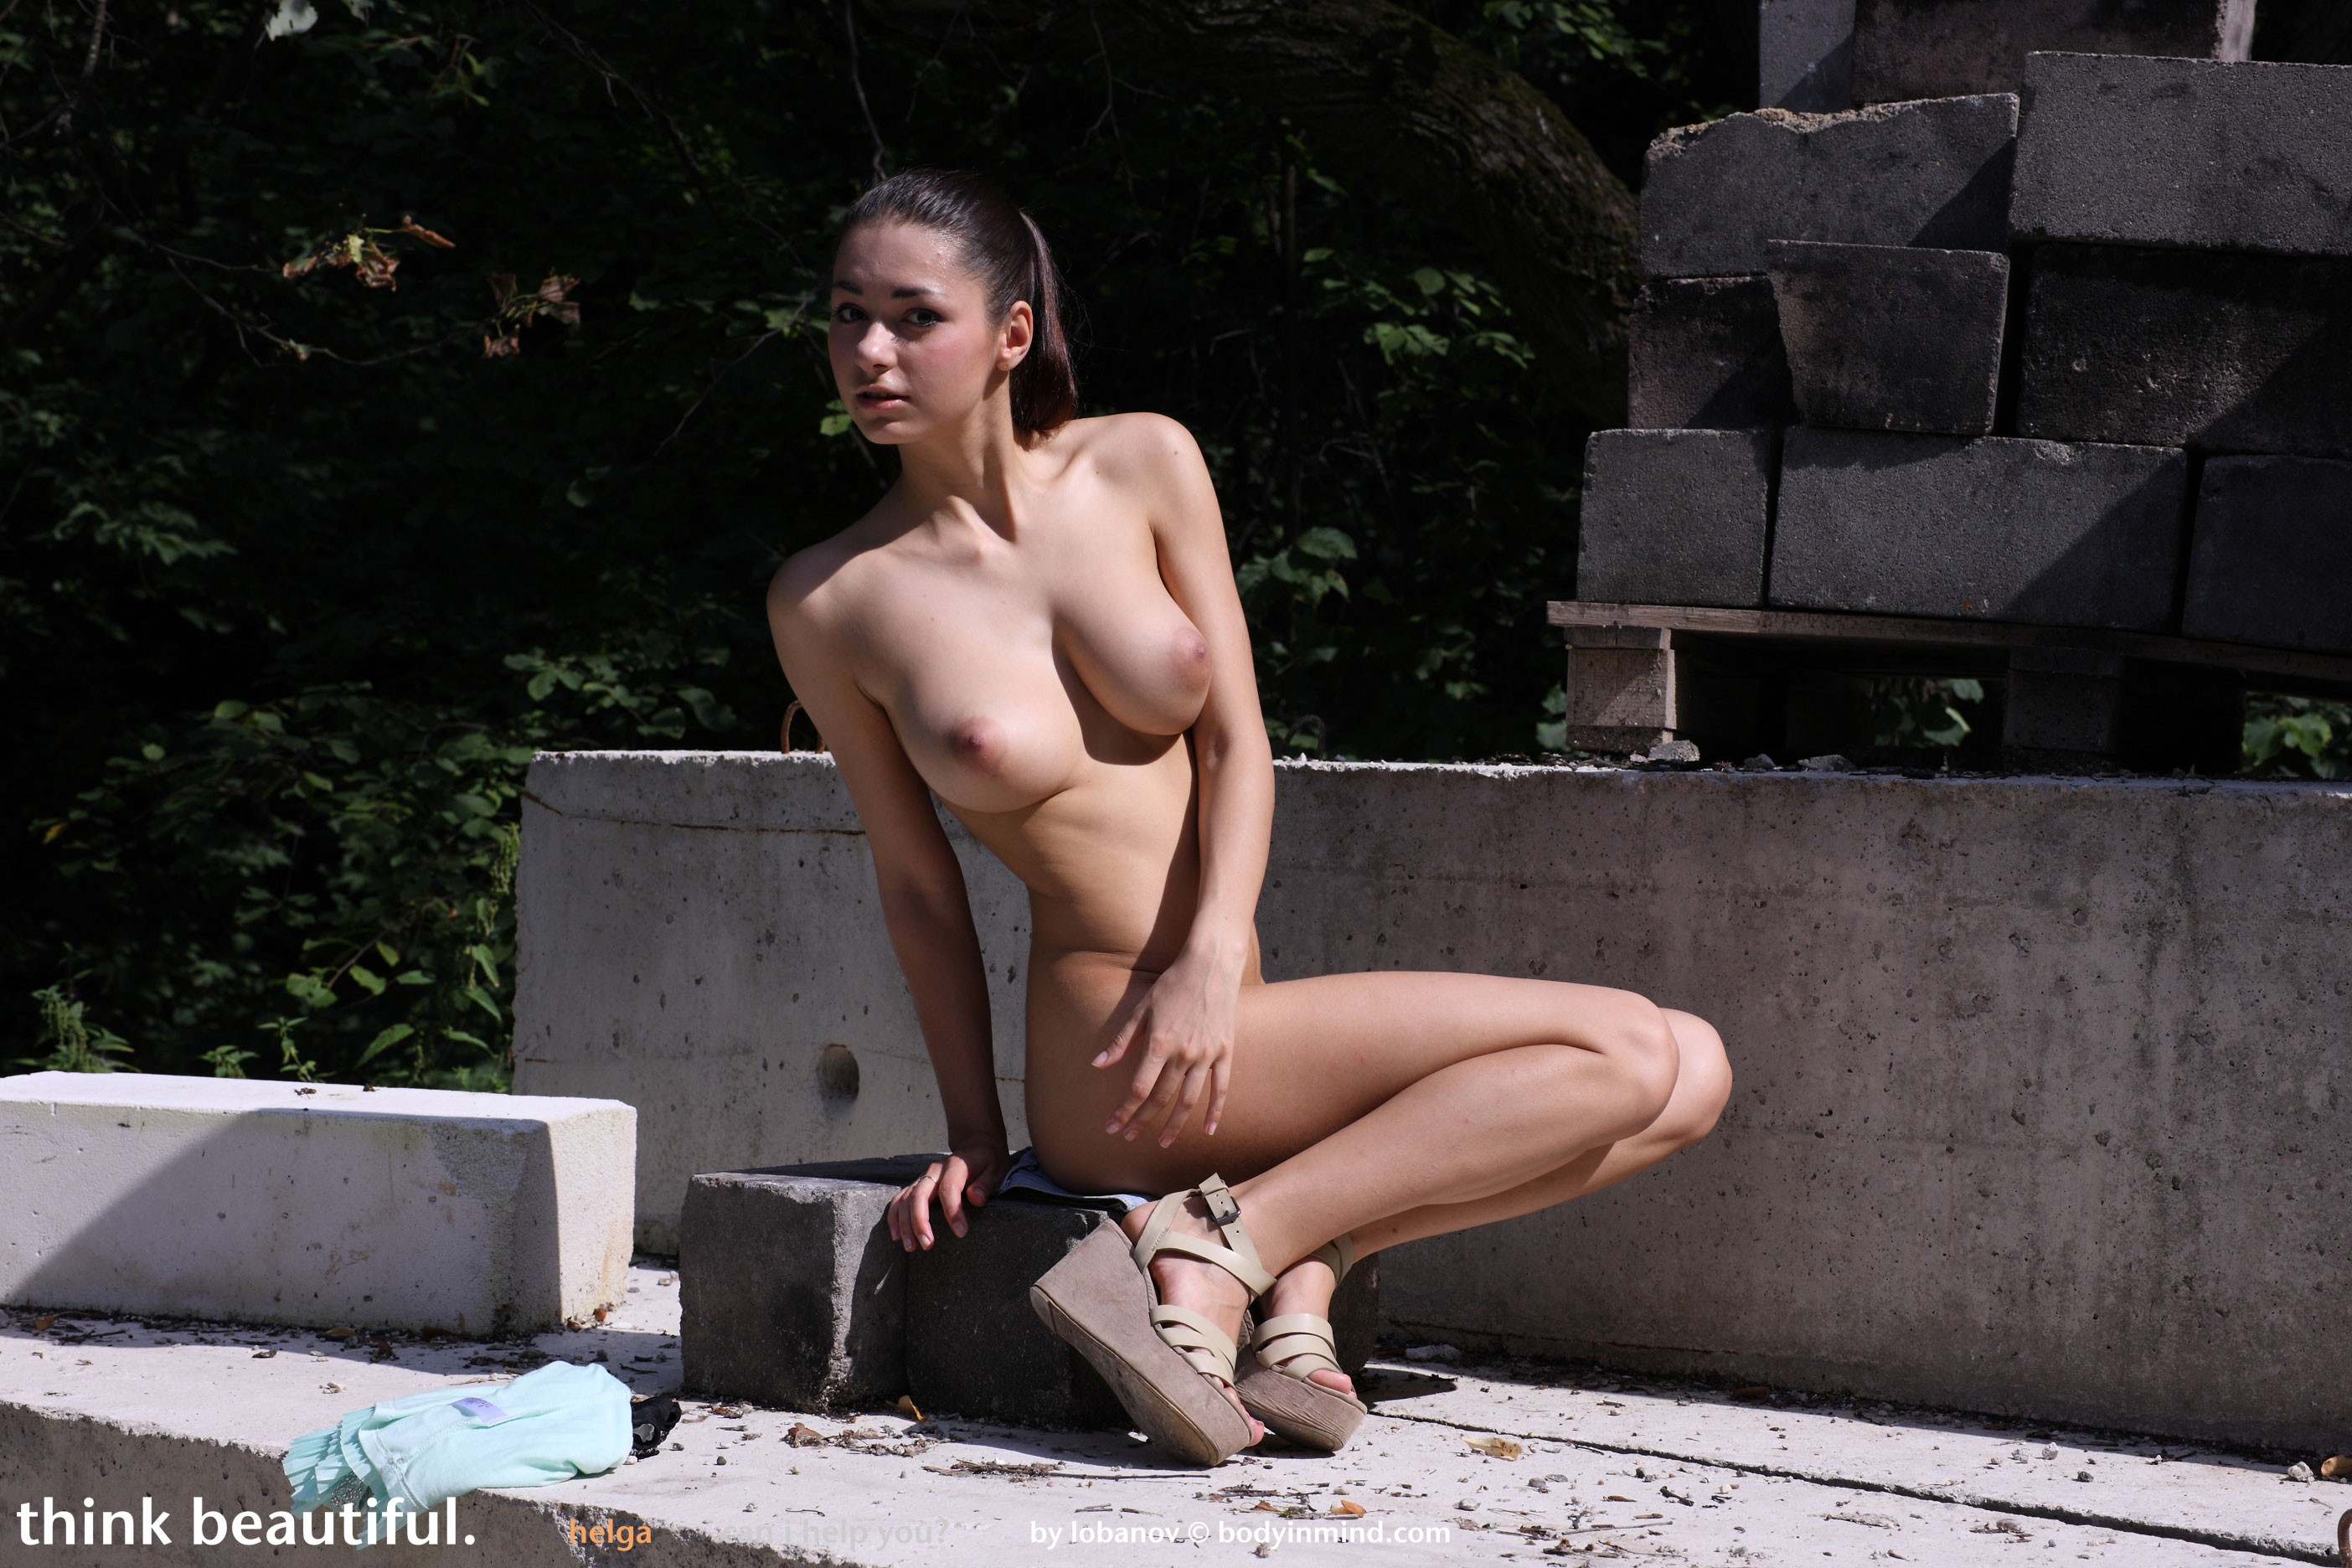 Nude hot russian girl big niples excited too